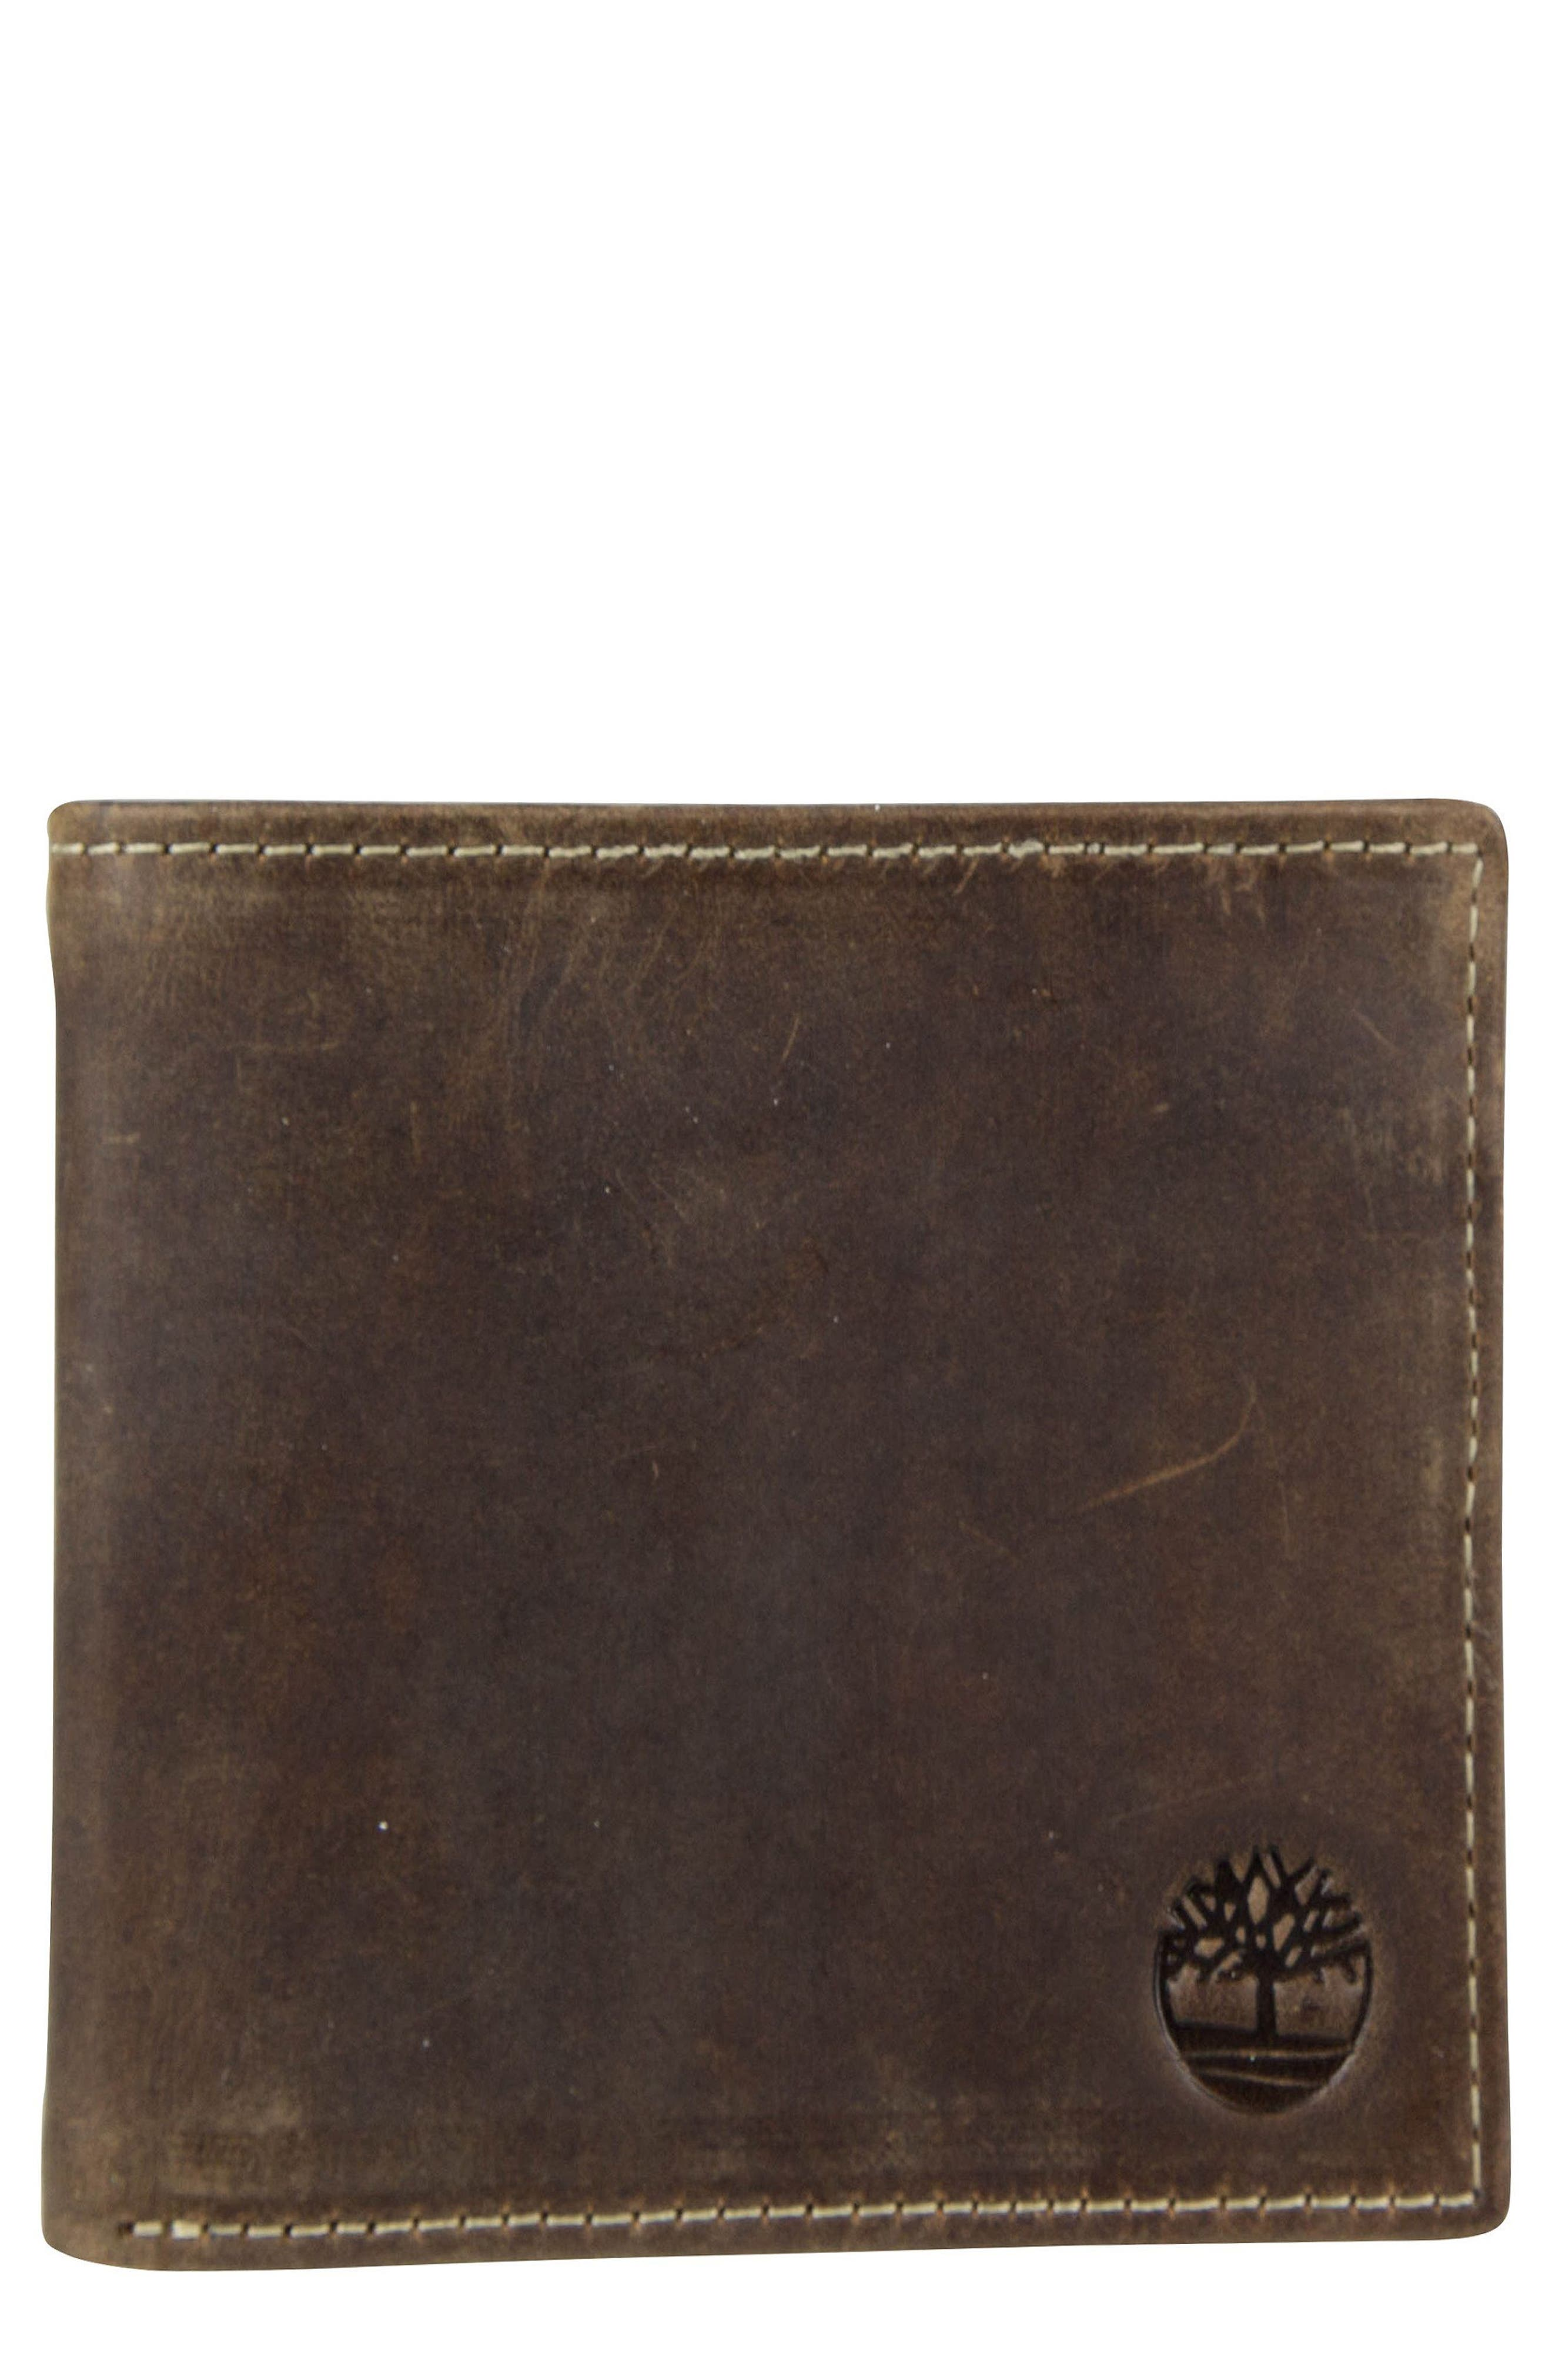 Distressed Leather Wallet,                         Main,                         color, 200